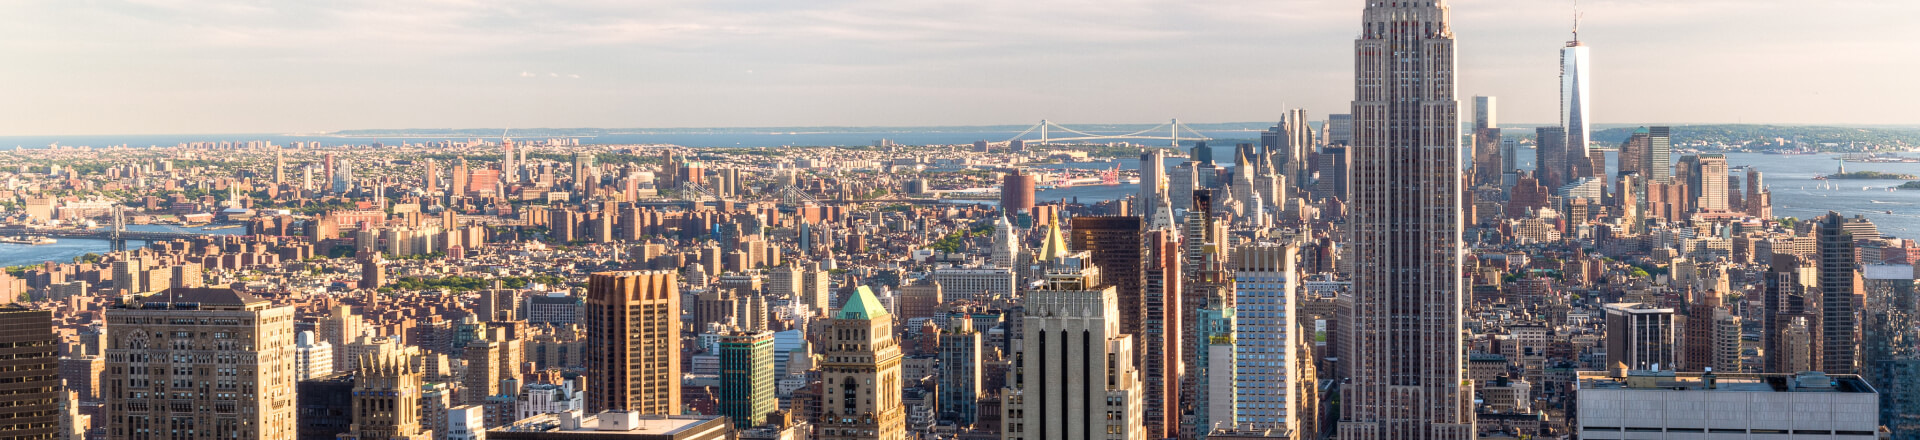 No Fee Apartments for Rent in NYC | Blueground